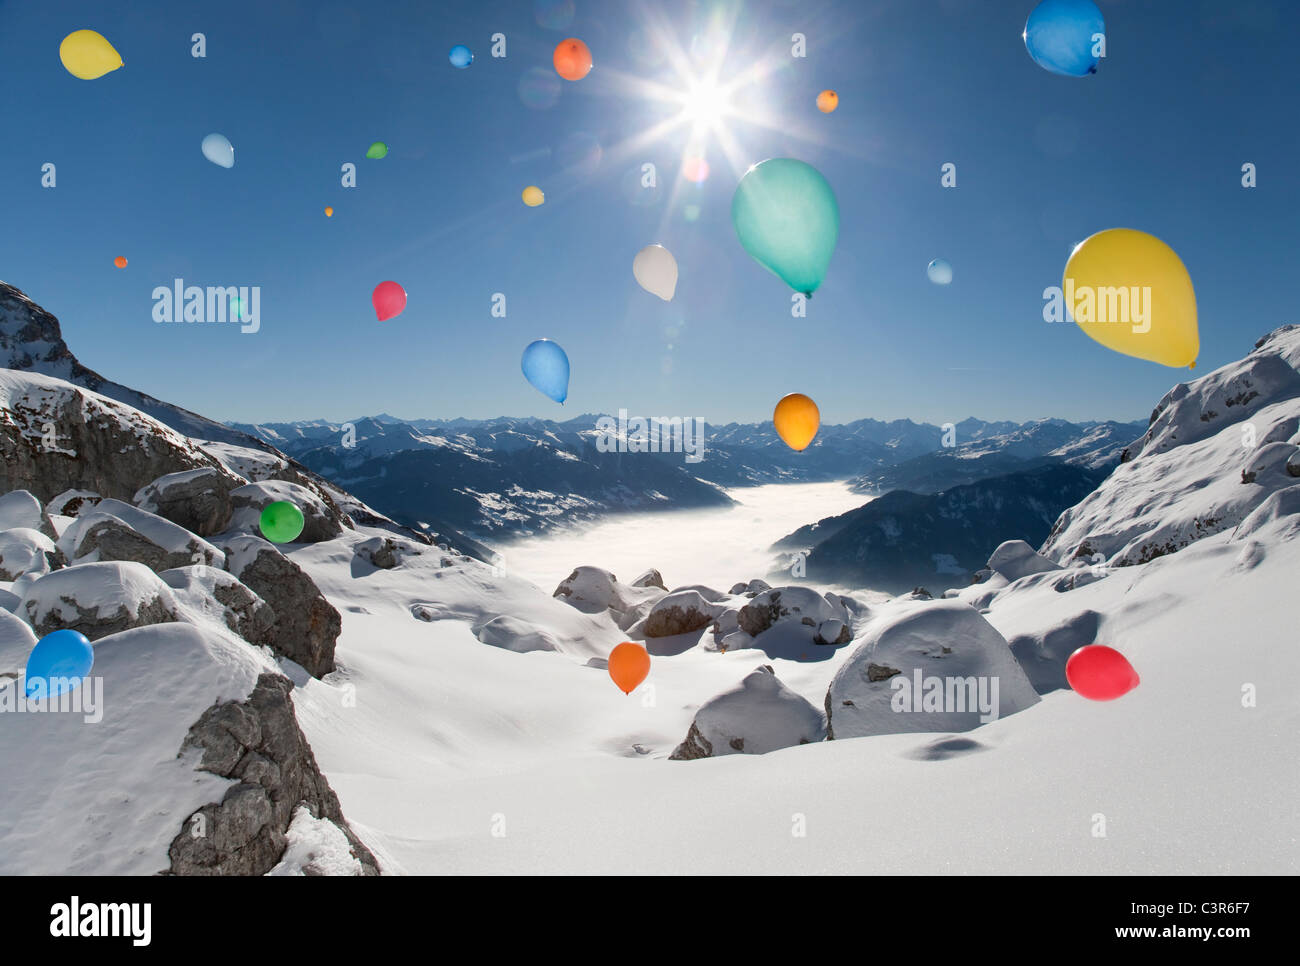 Ballons flying over winter landscape - Stock Image